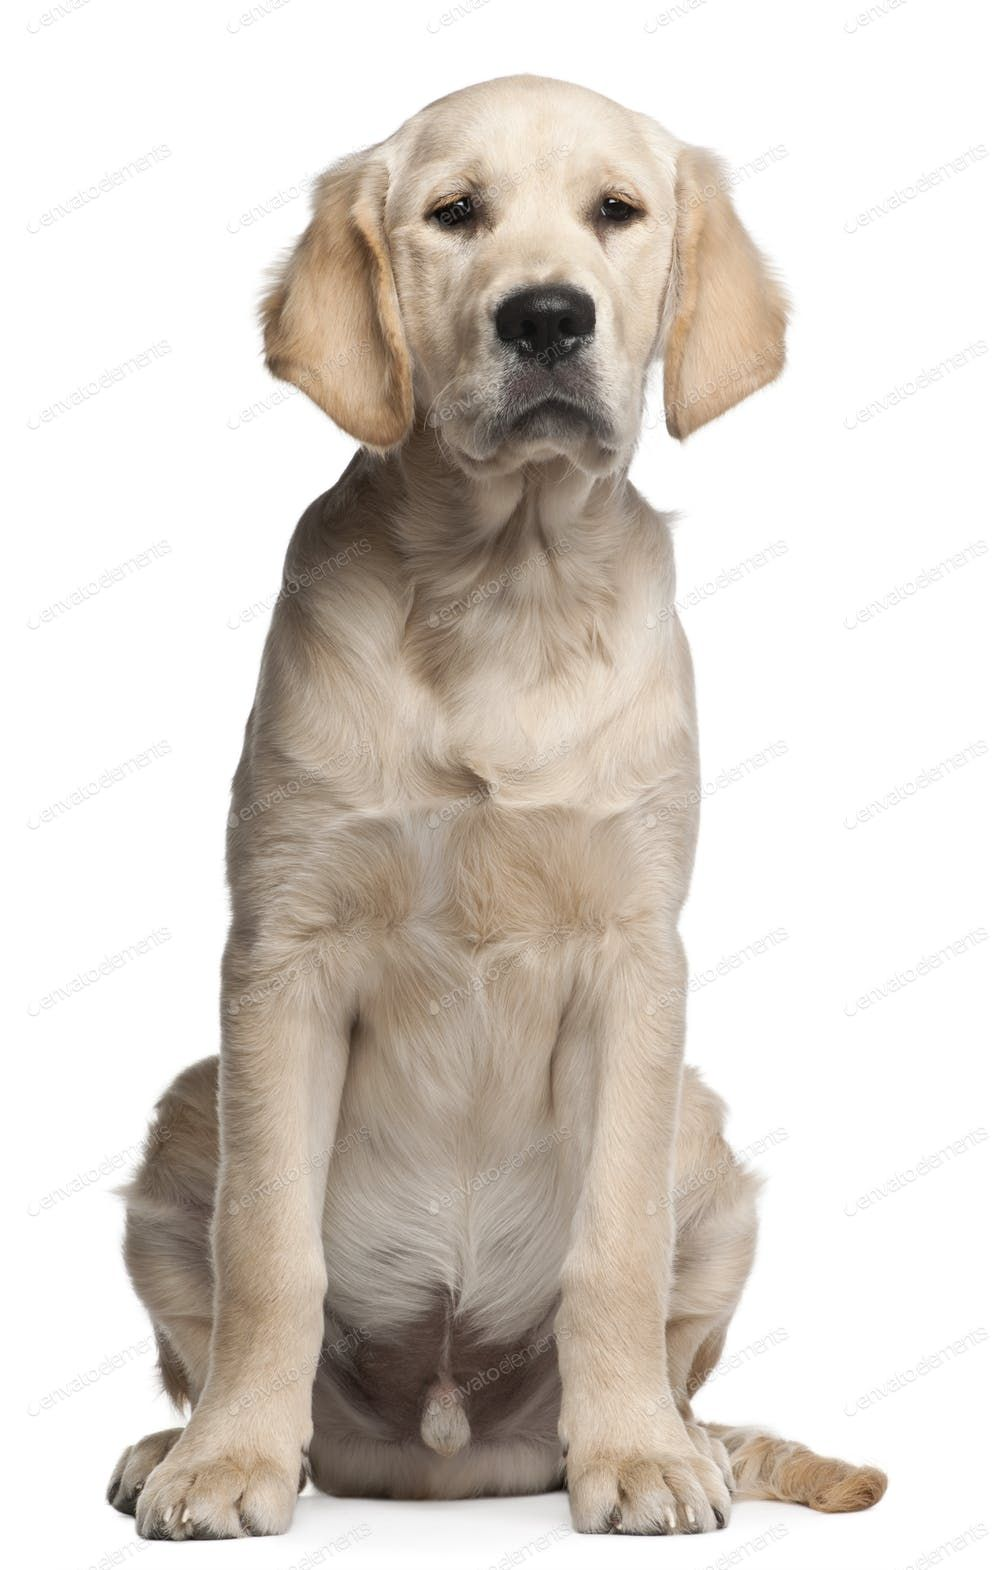 Golden Retriever Puppy 5 Months Old Sitting In Front Of White